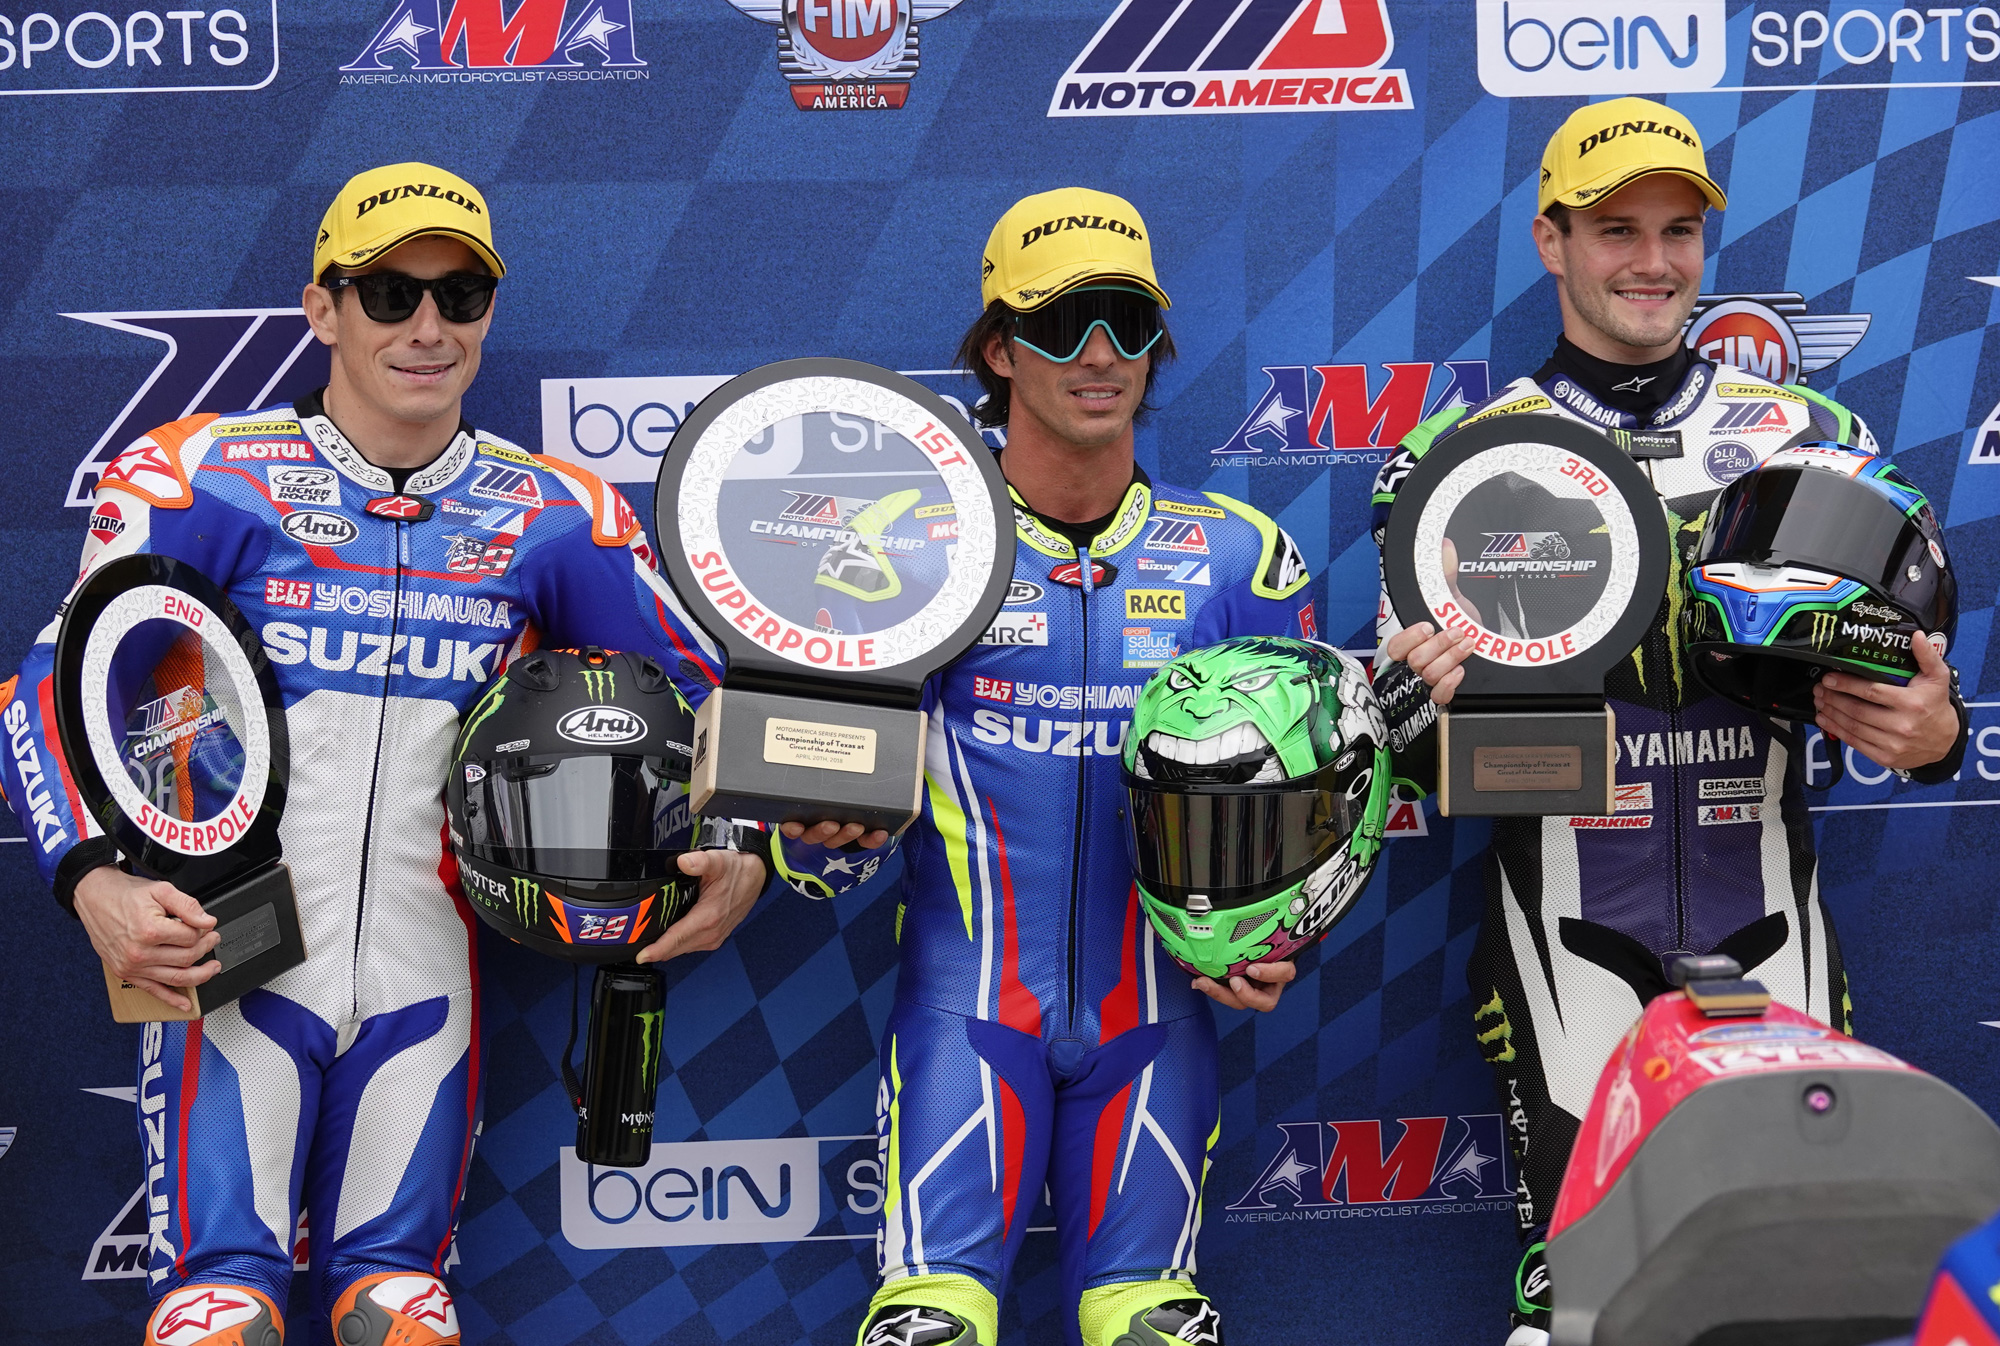 Toni Elias (center) and Yoshimura Suzuki teammate Roger Hayden (left) qualified 1st and 2nd in MotoAmerica Superpole at COTA on Friday. It marked the third-career MotoAmerica Superpole for Elias.